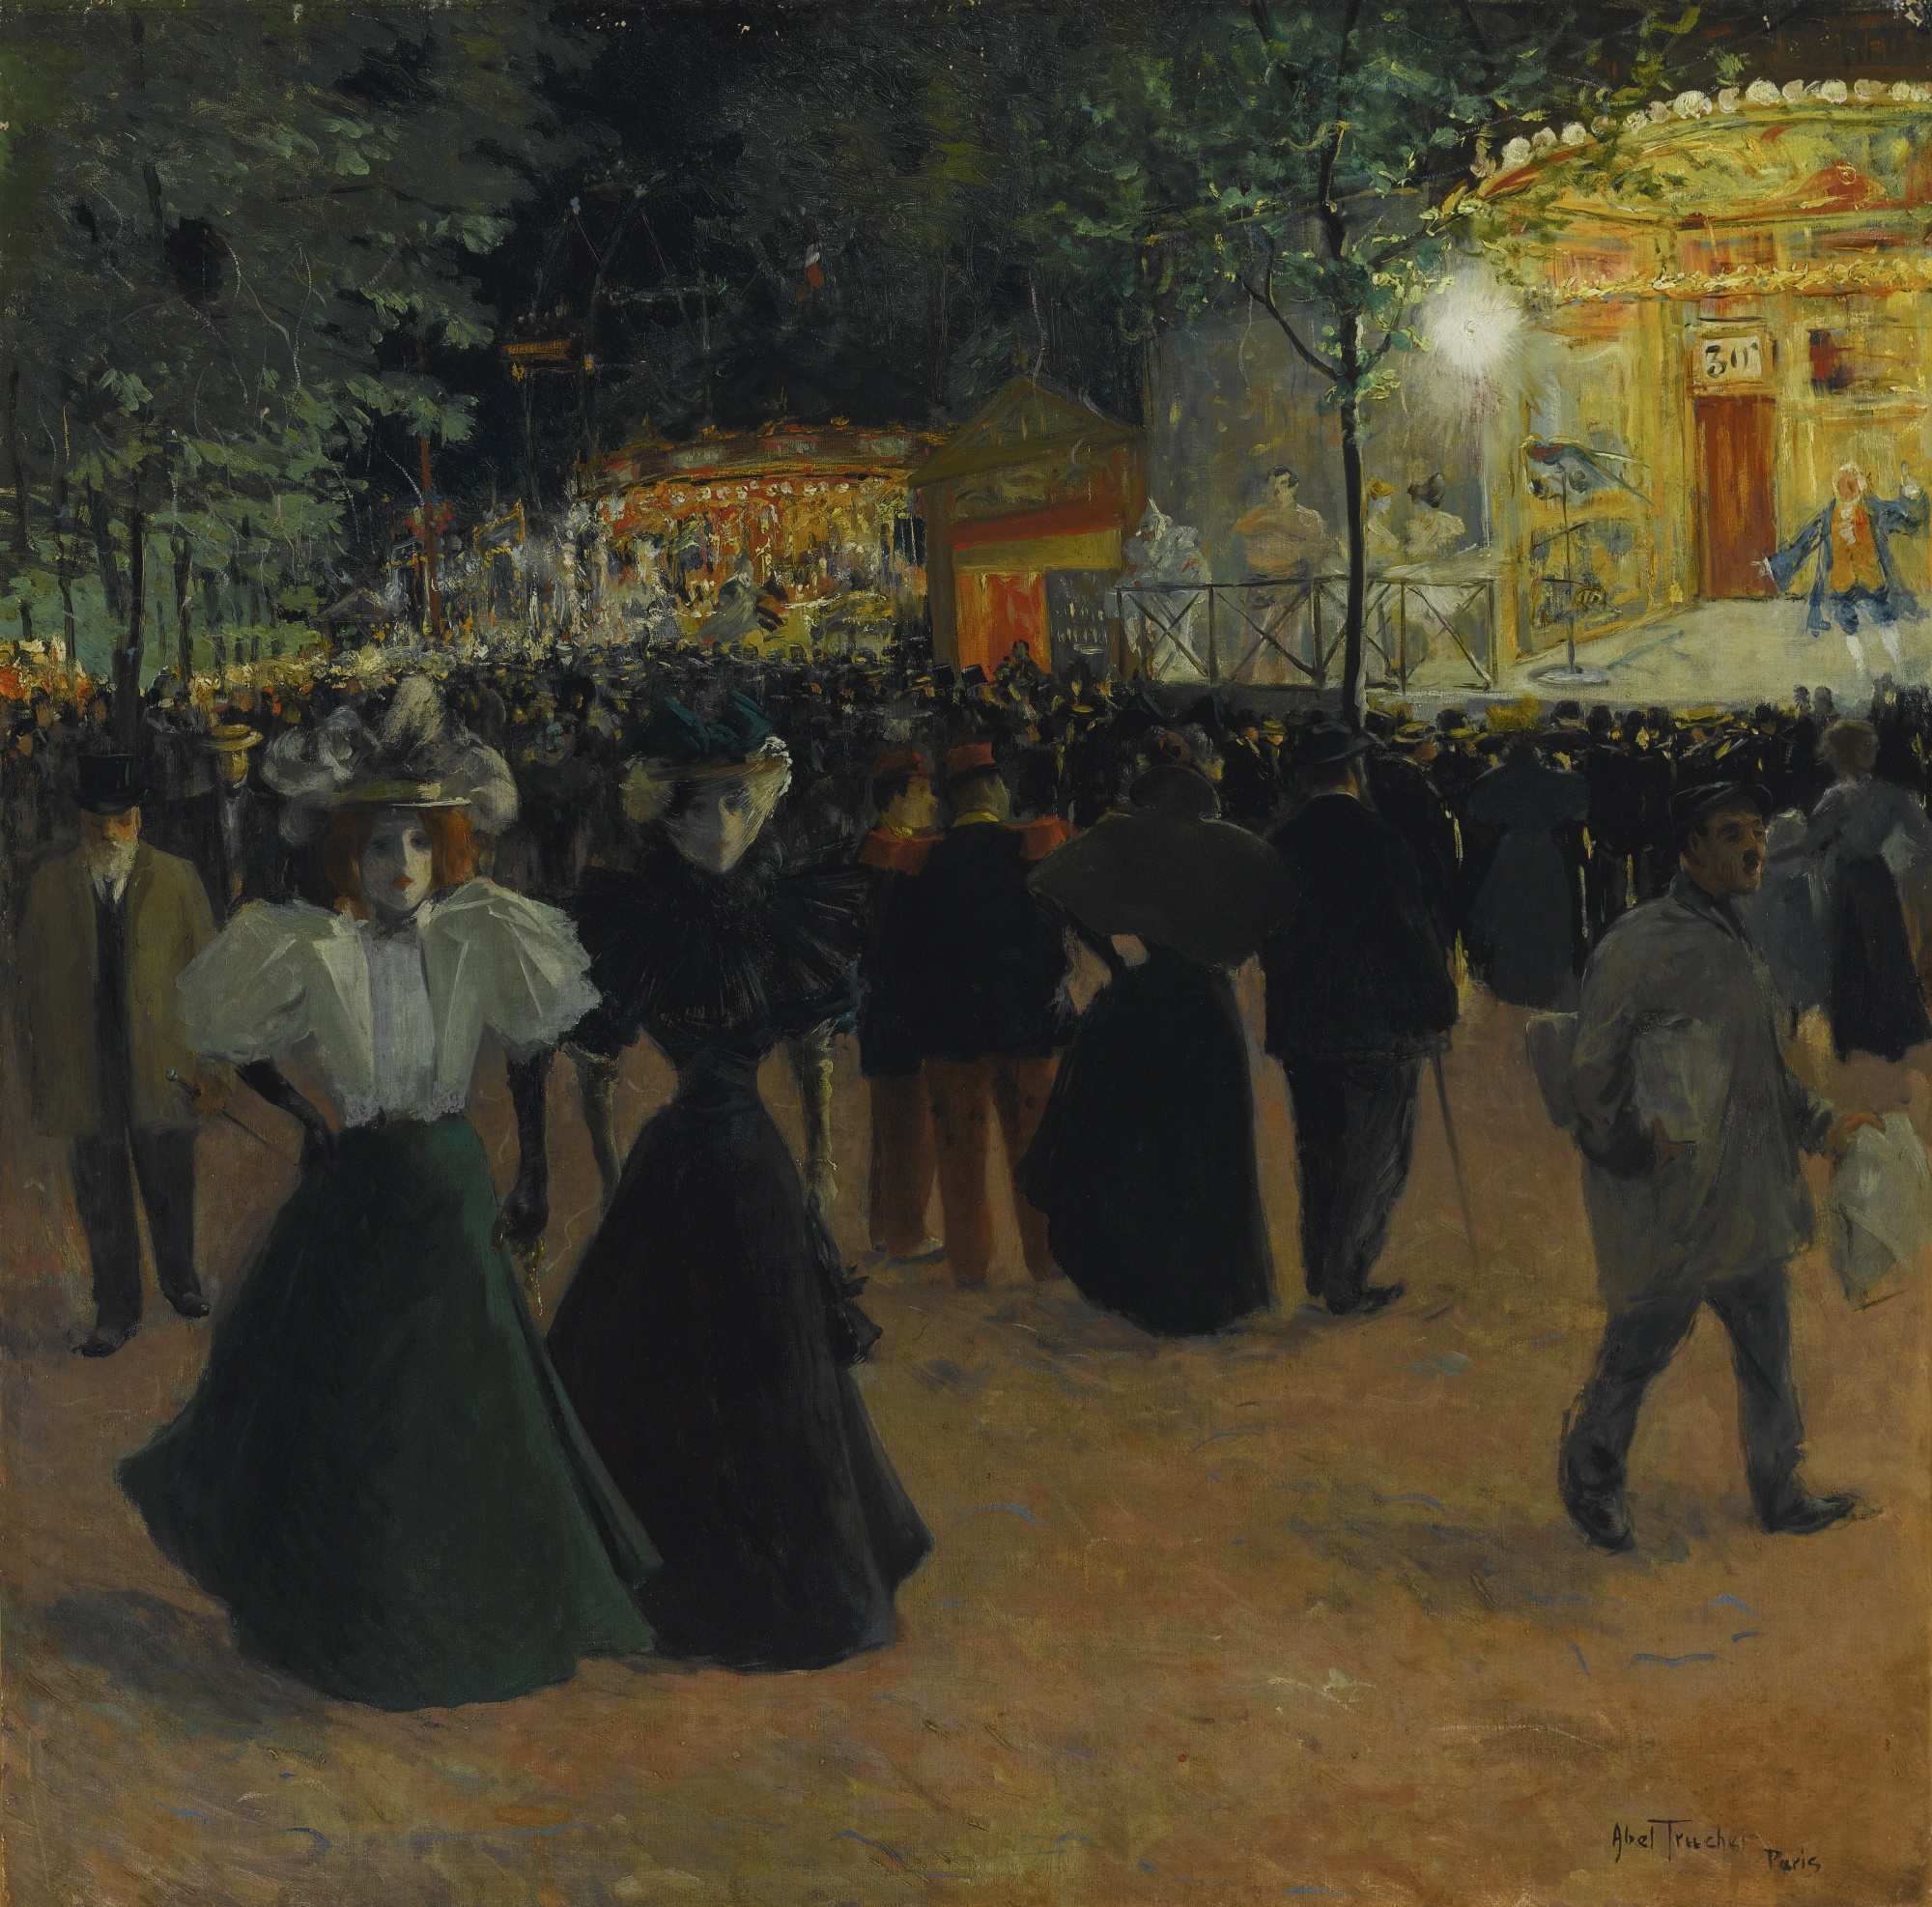 La fête foraine, Place Pigalle by Louis Abel-Truchet. Where the head structure is done well, your brain will fill in the details.